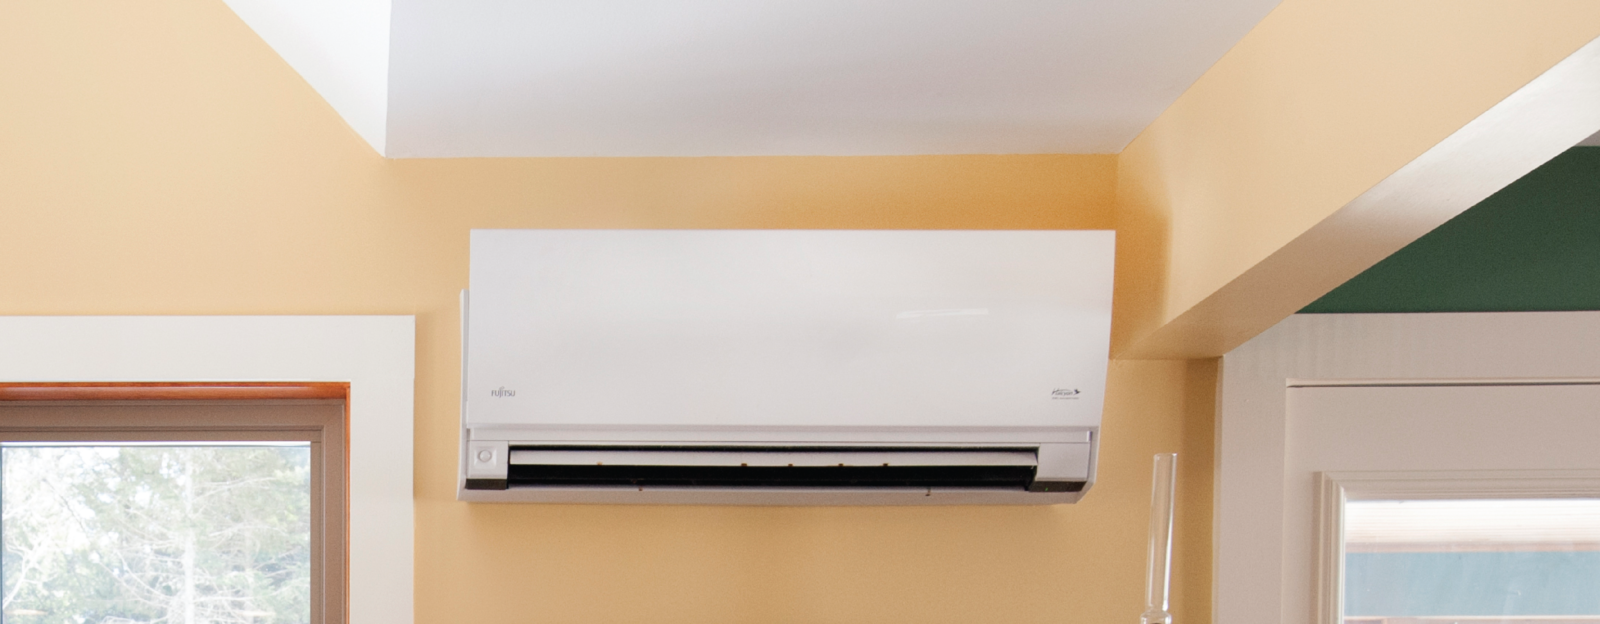 Heat Pumps: How They Work and What They Cost